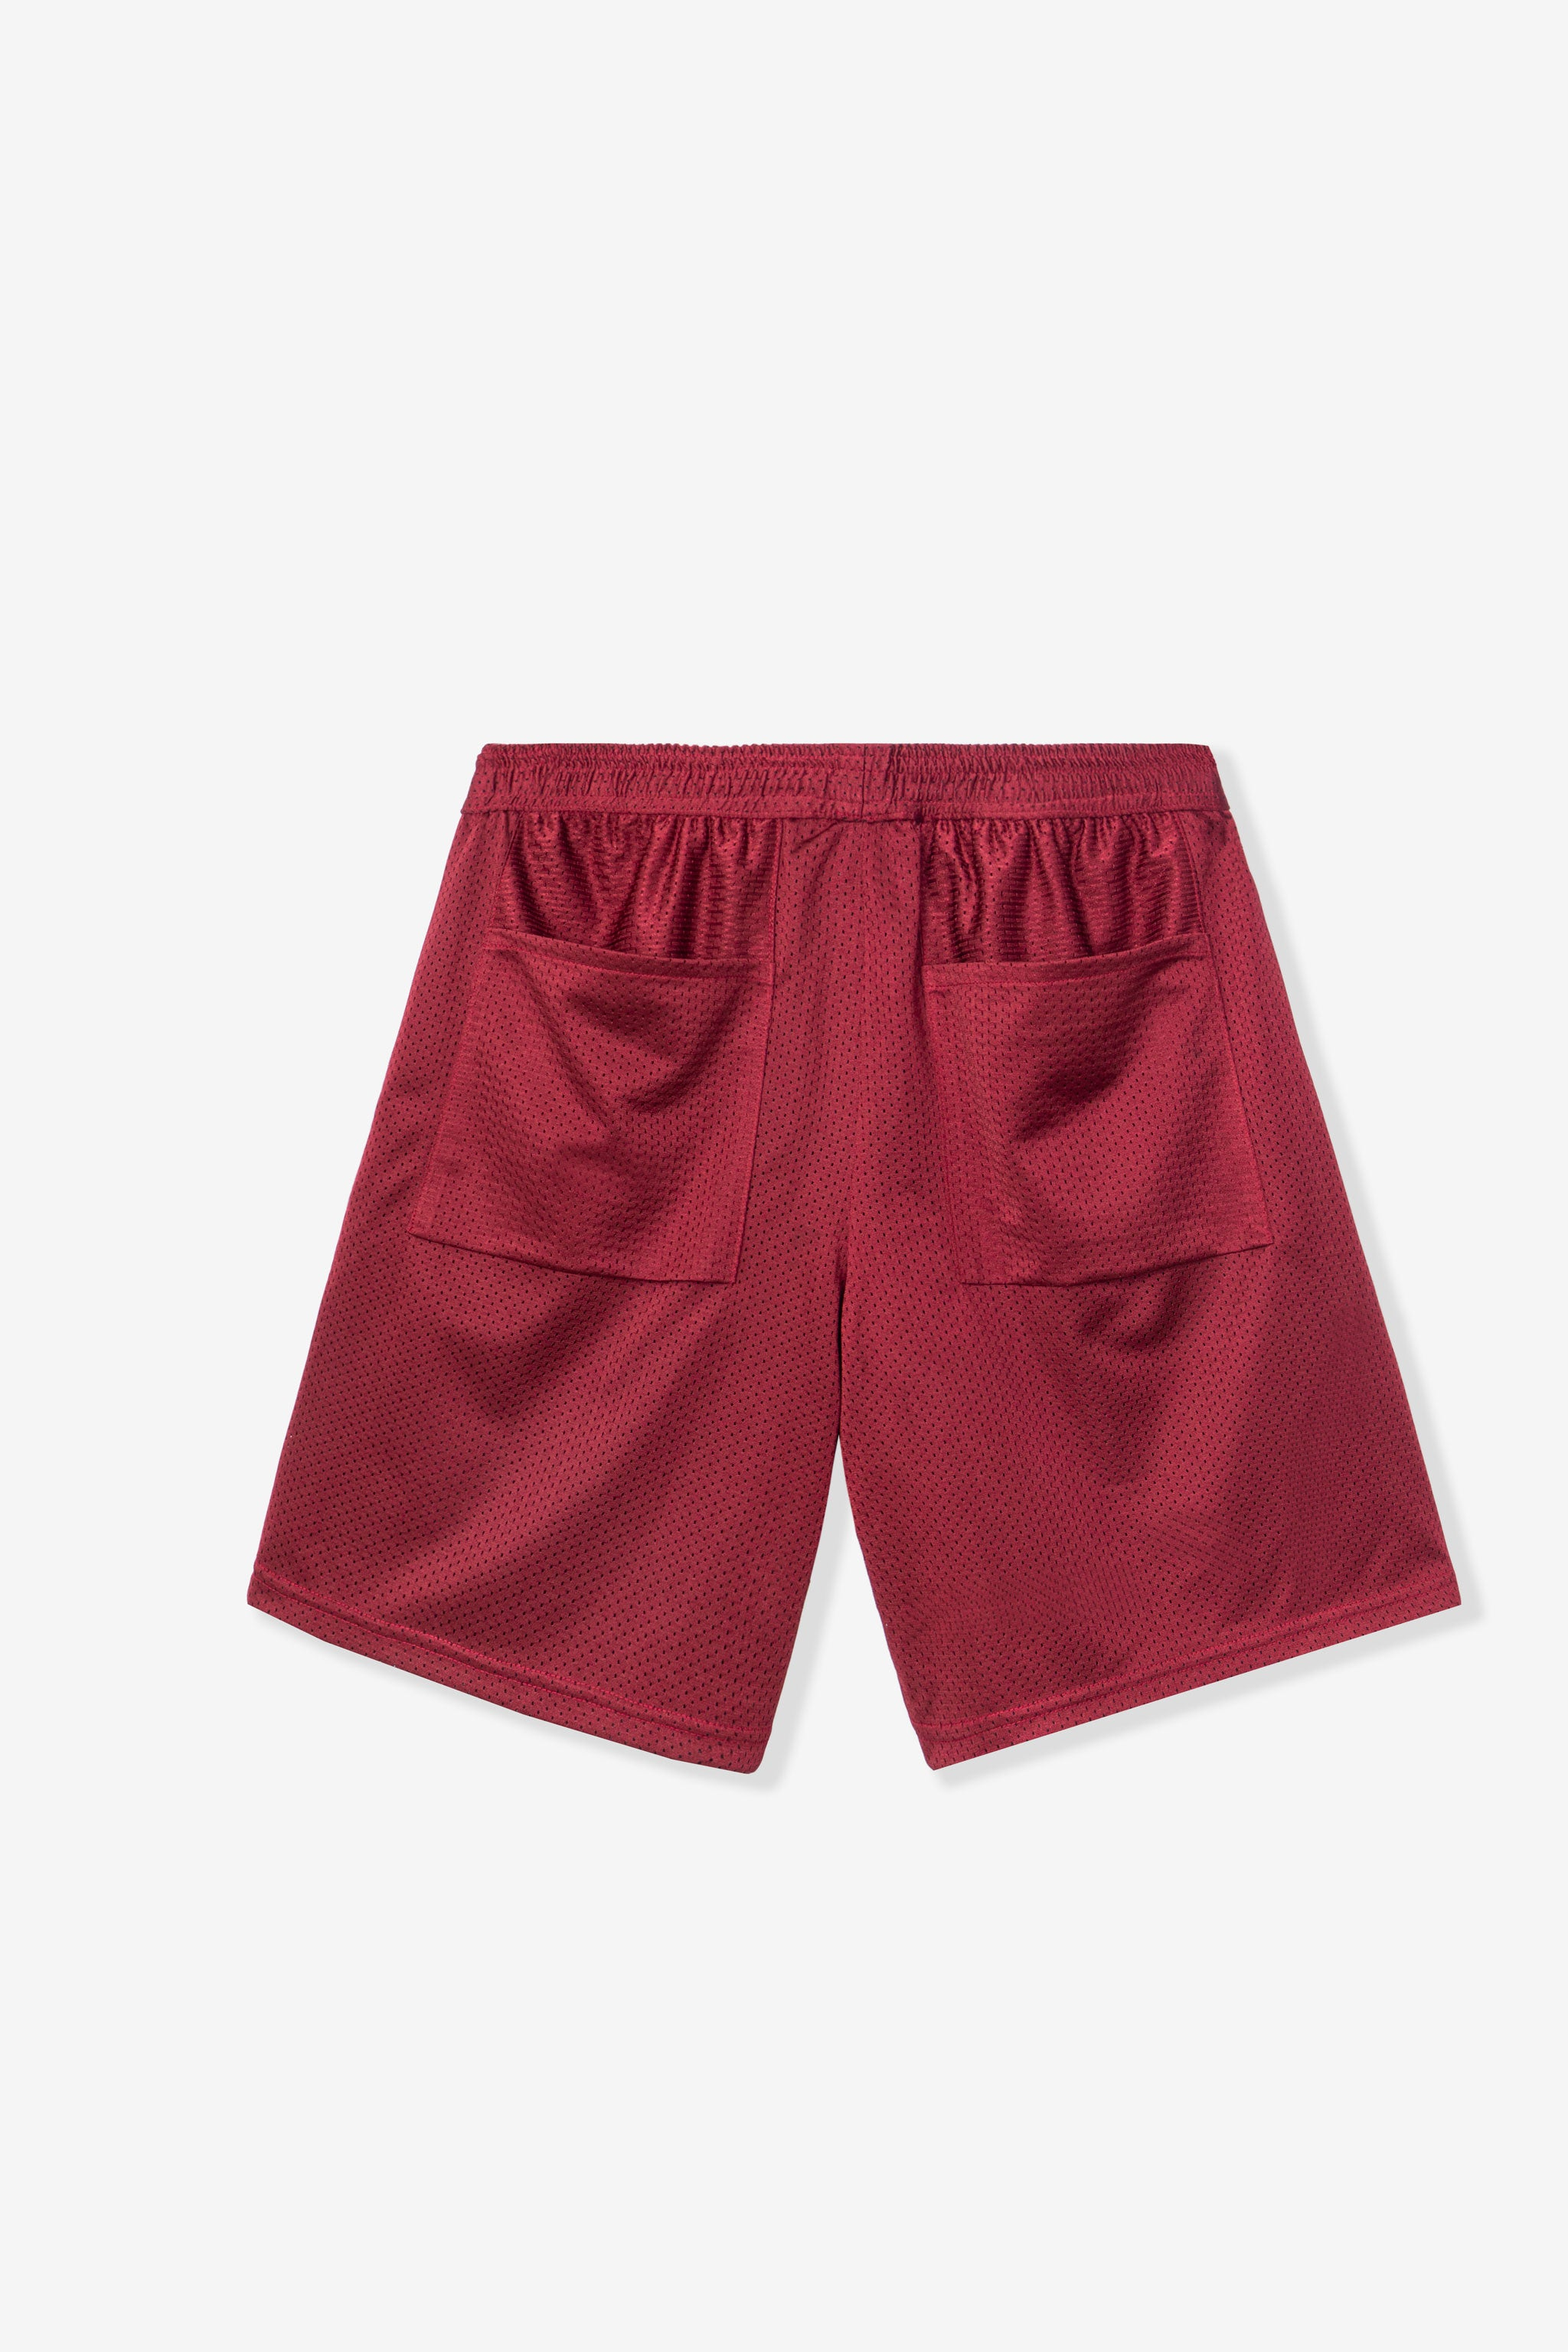 Goodfight Grocery Getter Shorts Cardinal